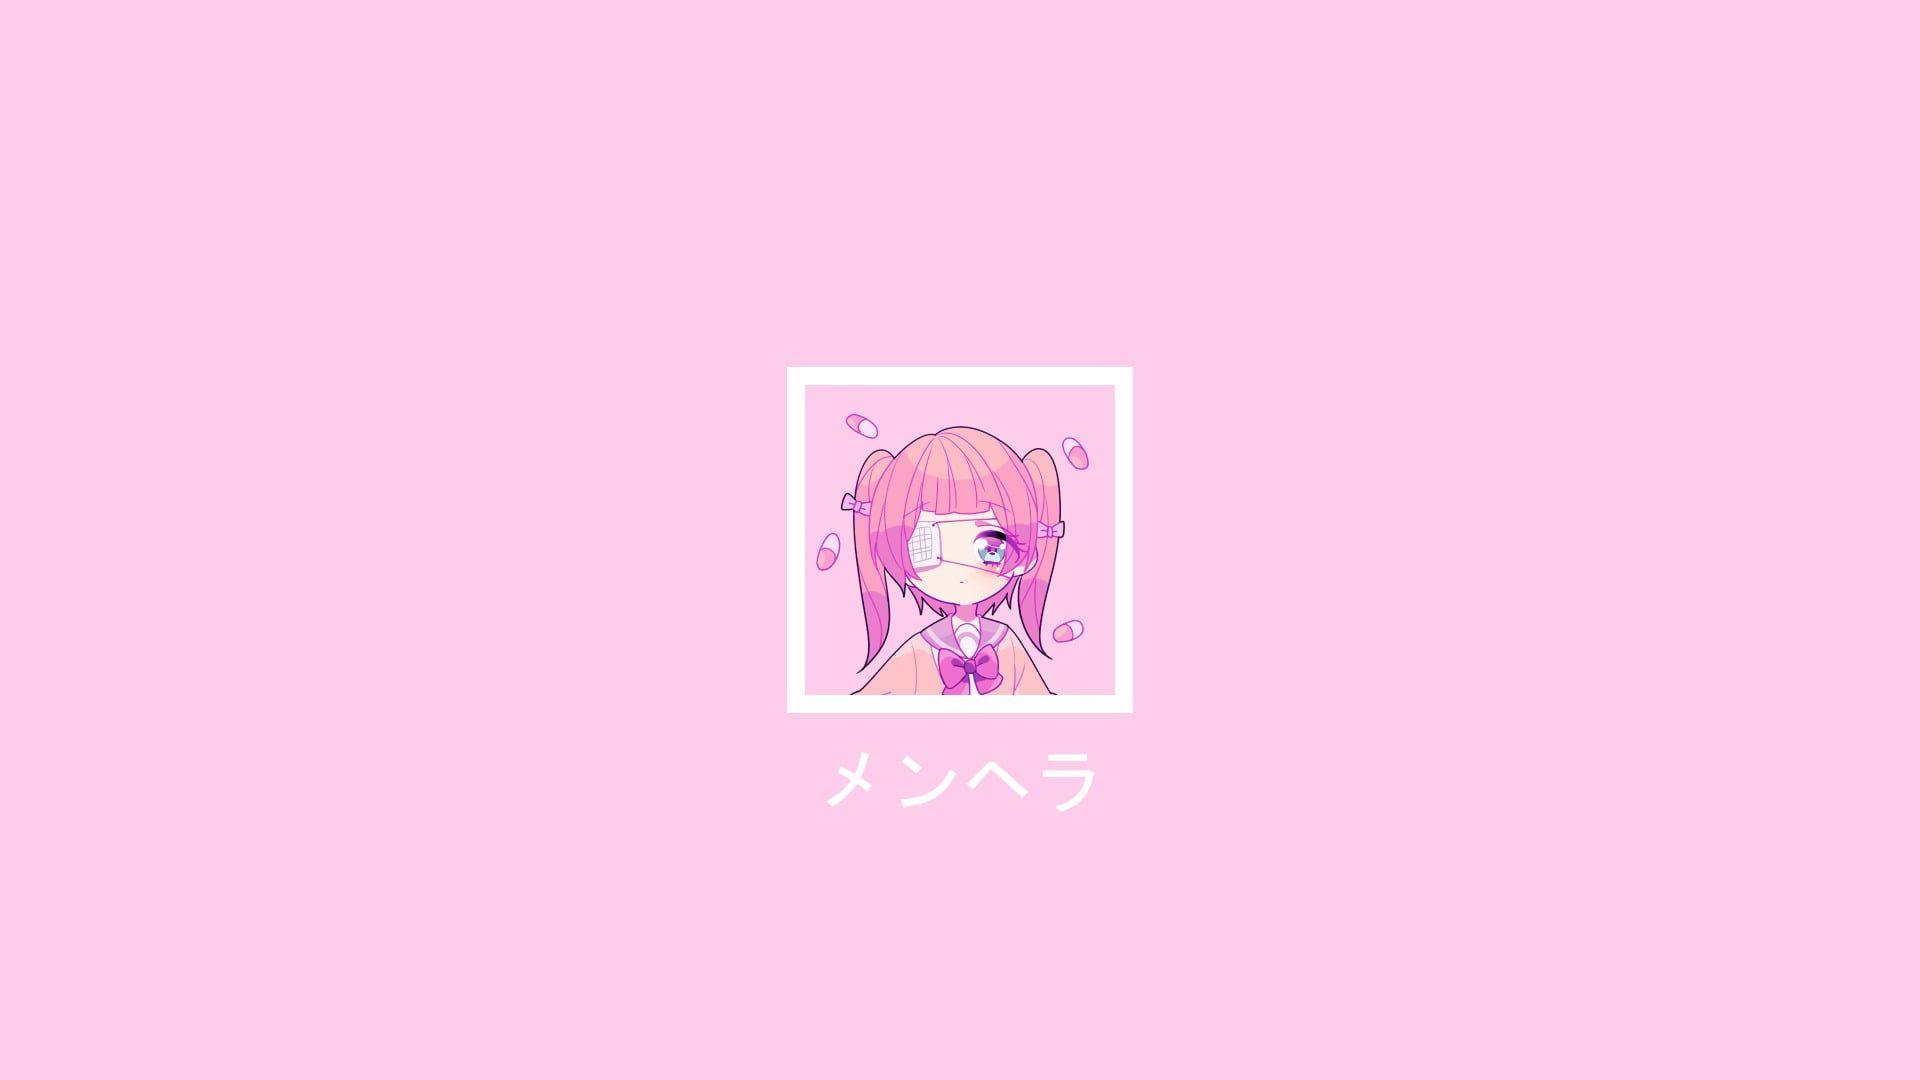 Menhera Chan Simple Background Yami Kawaii 1080p Wallpaper Hdwallpaper Desktop In 2020 Kawaii Background Aesthetic Desktop Wallpaper Anime Wallpaper Iphone